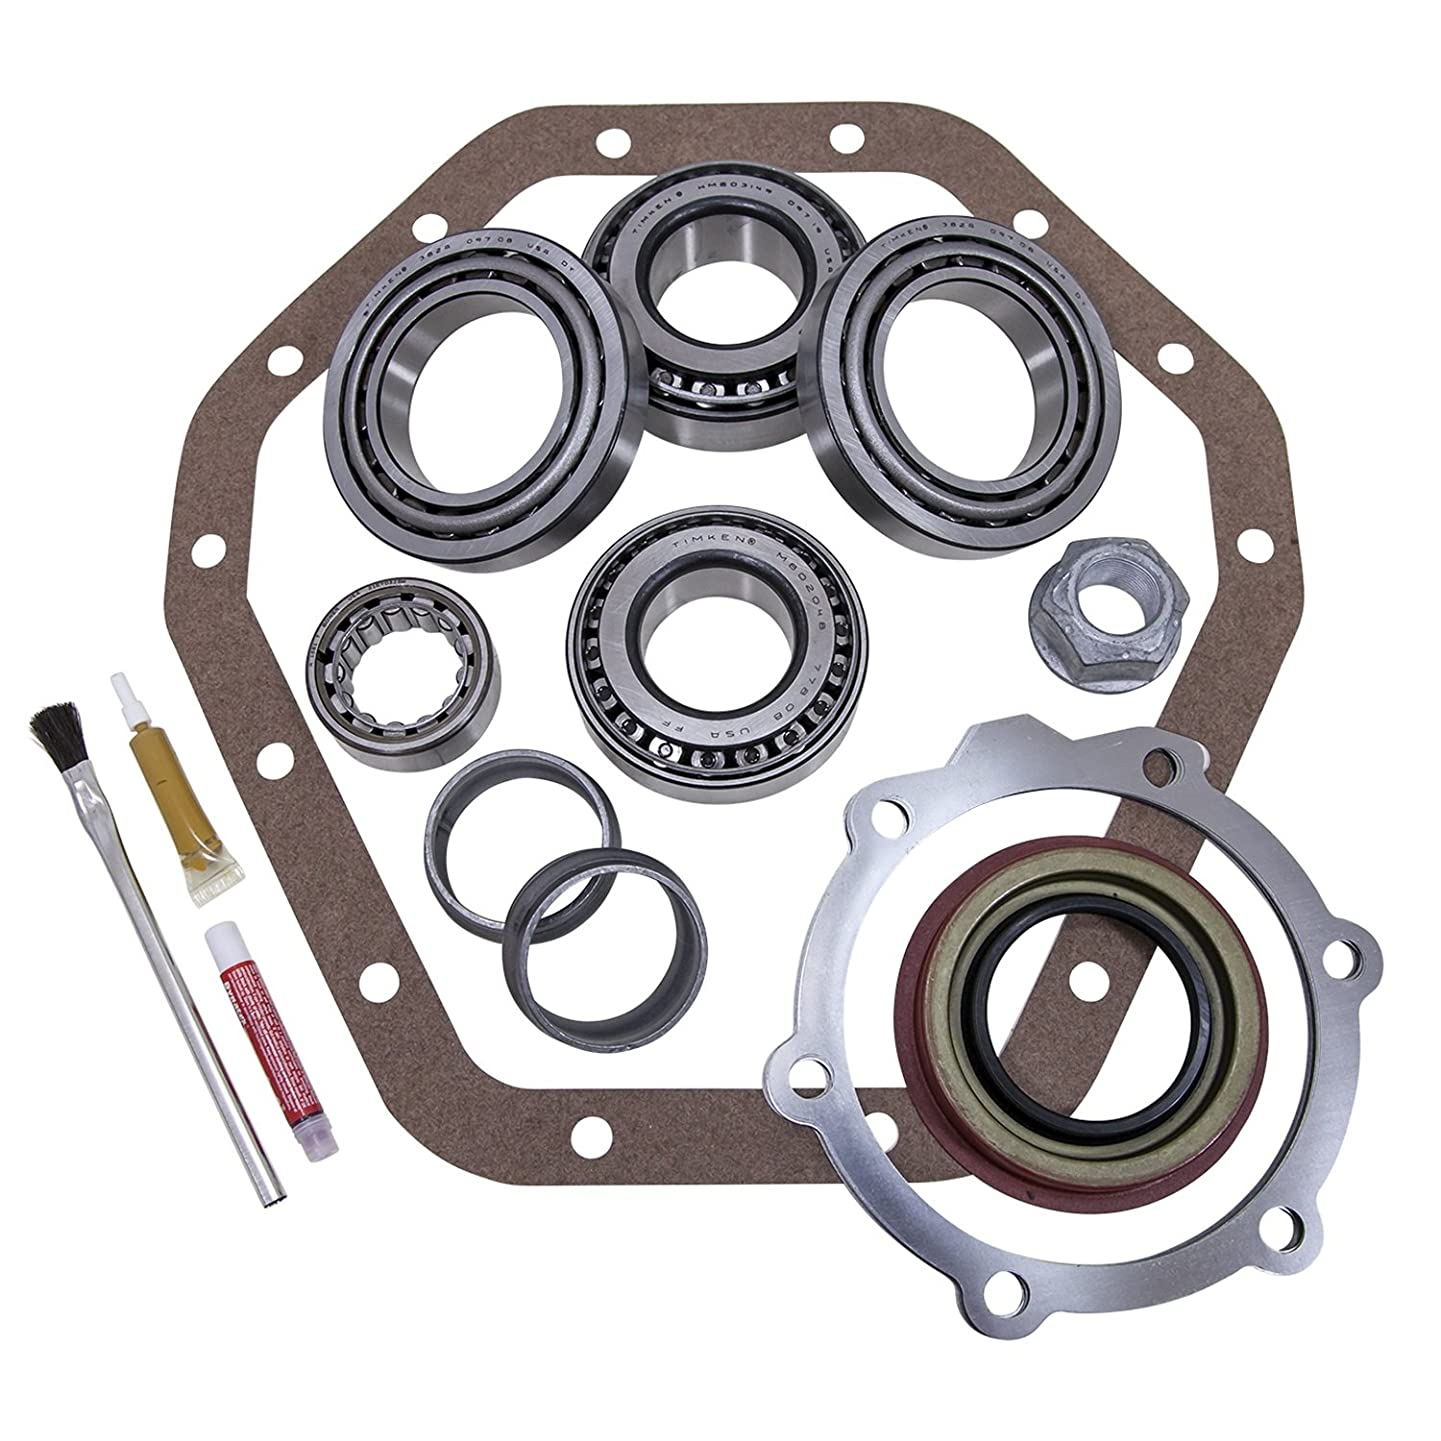 USA Standard Gear (ZK GM14T-C) Master Overhaul Kit for GM 14-Bolt Truck 10.5 Differential